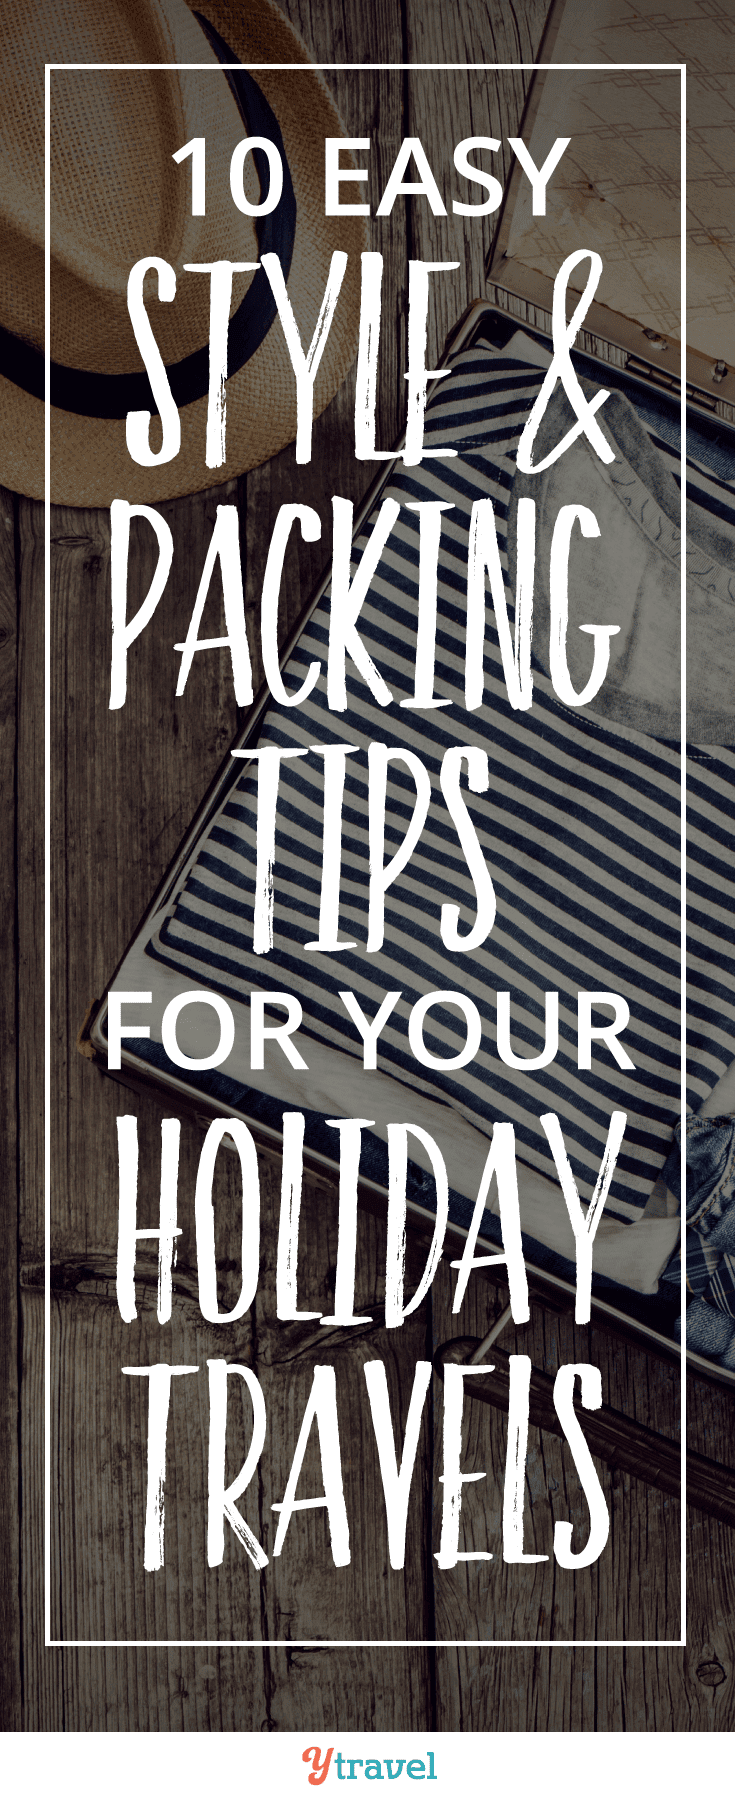 The best packing tips for your holiday travels in 10 easy steps! Make a packing list in order to bring the essentials and leave behind the unnecessary.